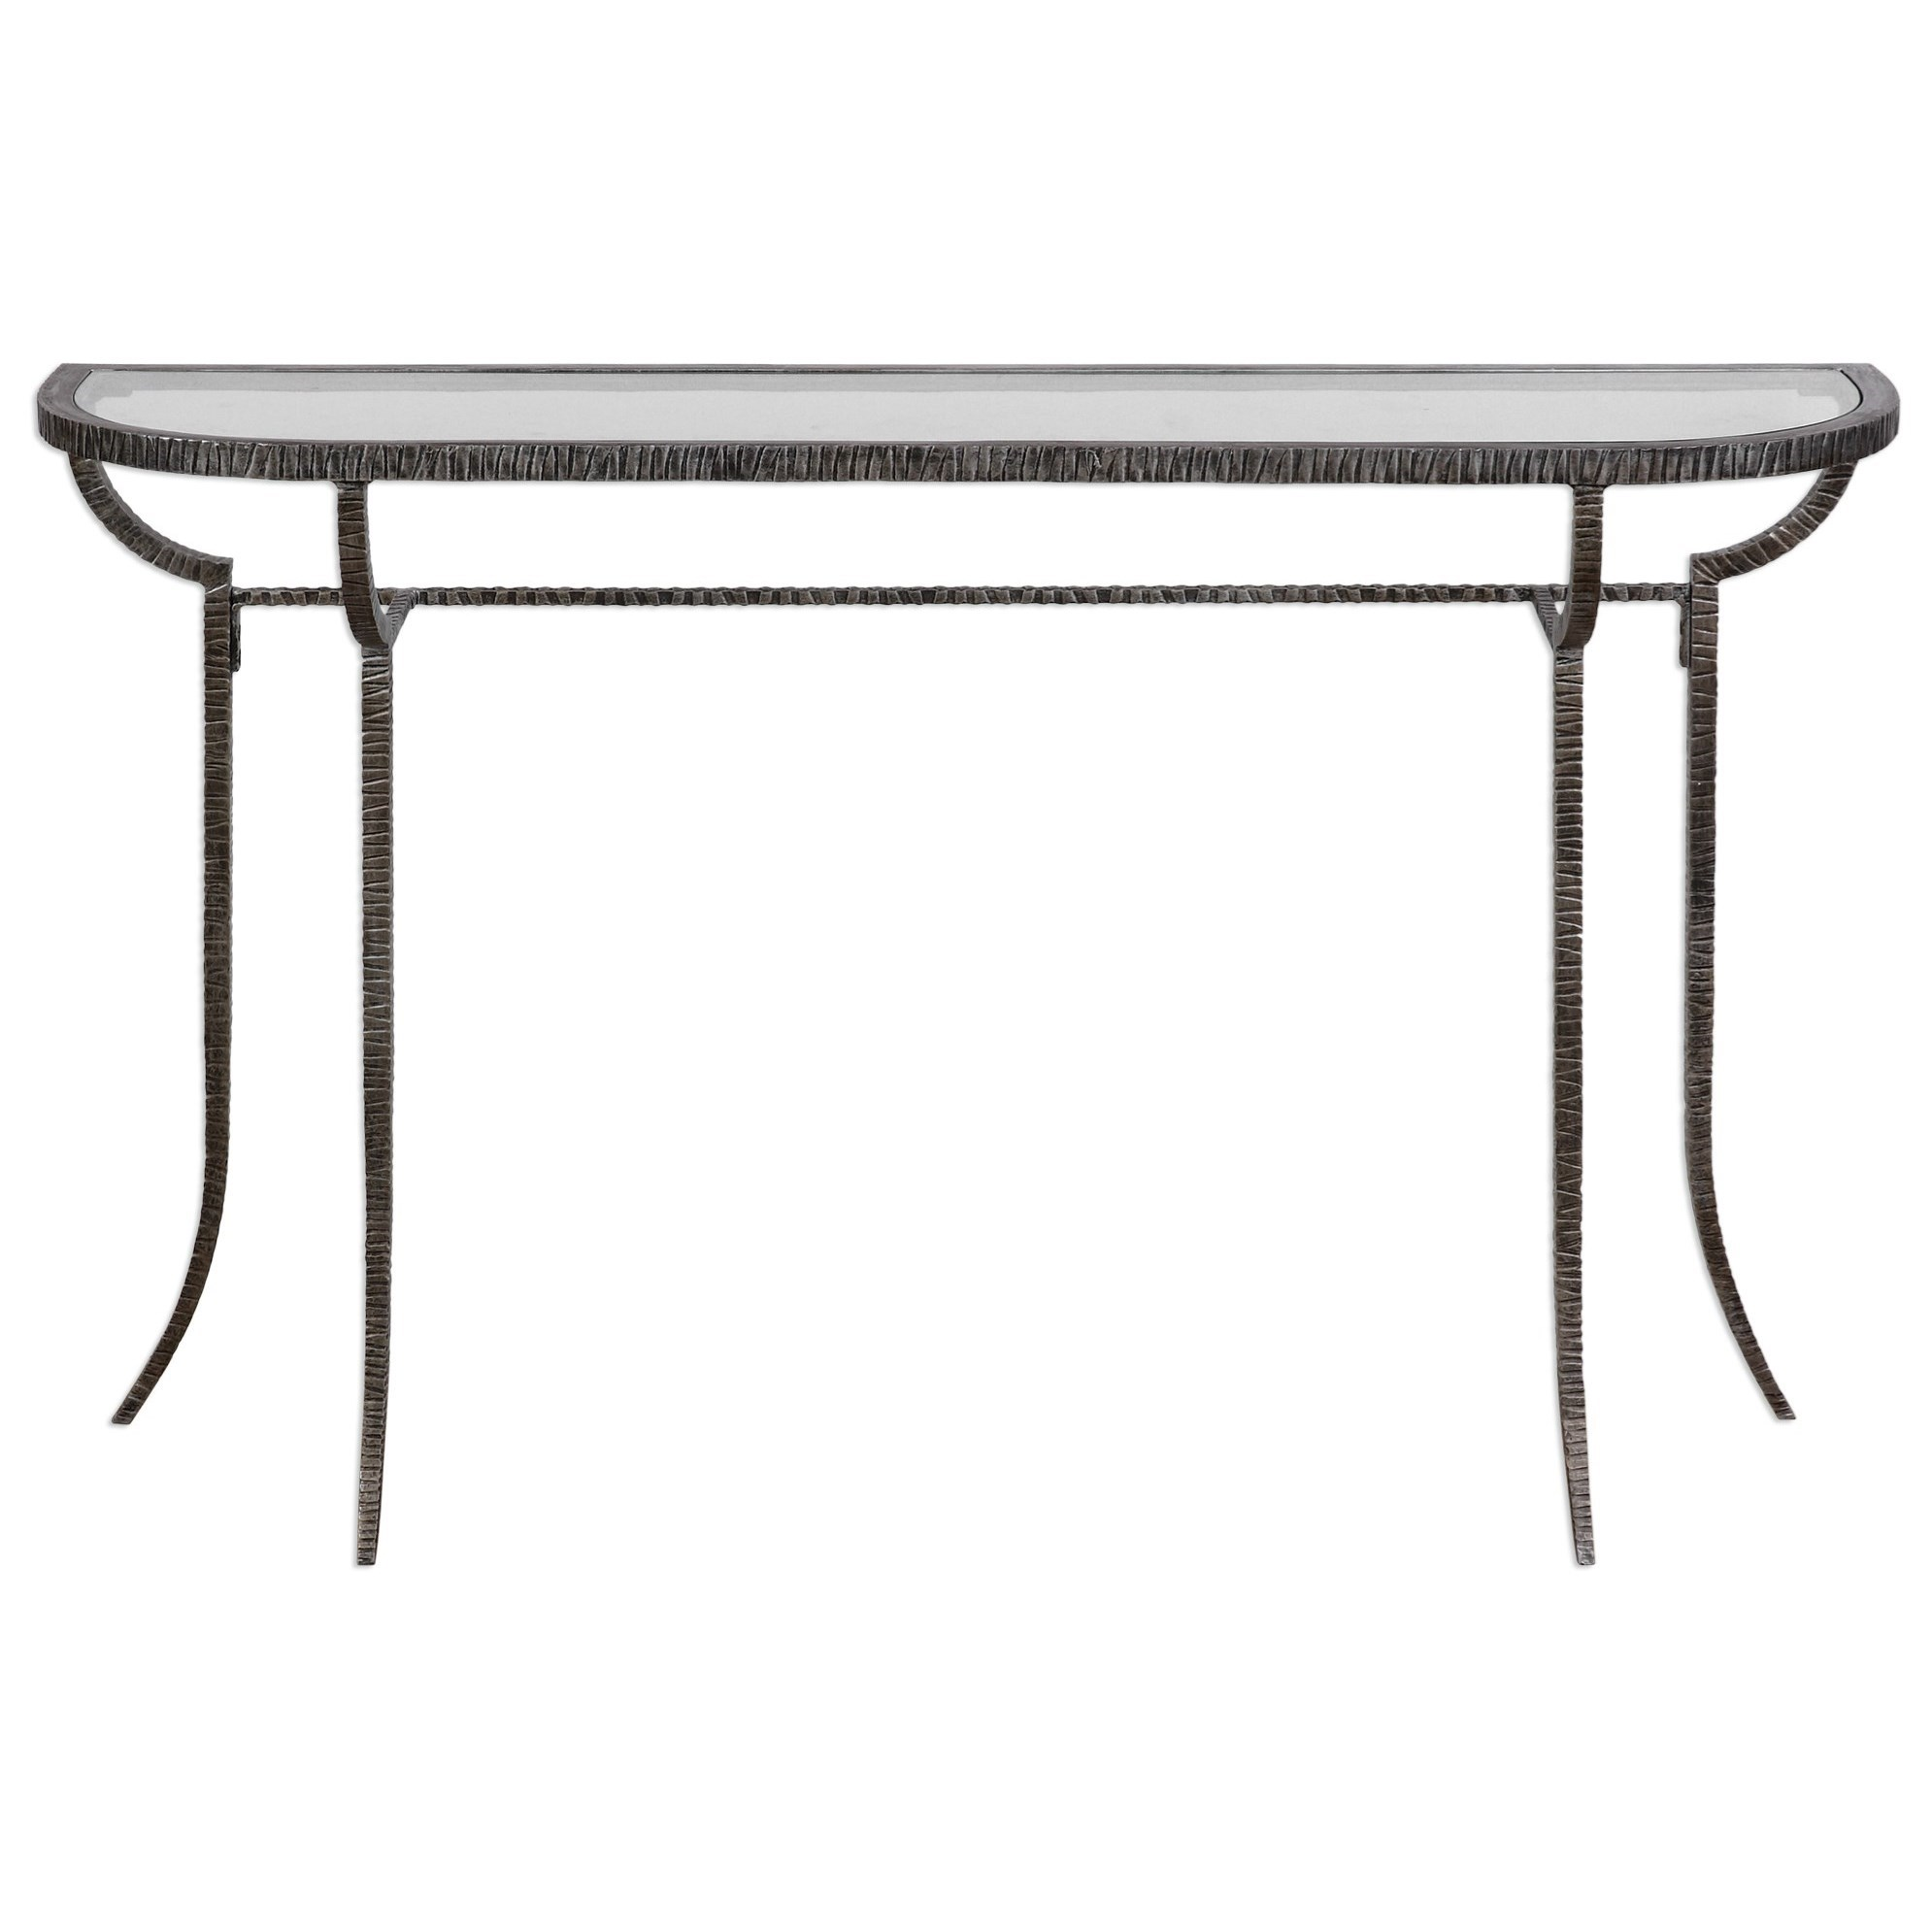 Uttermost Accent Furniture Nakoda Console Table - Item Number: 24691